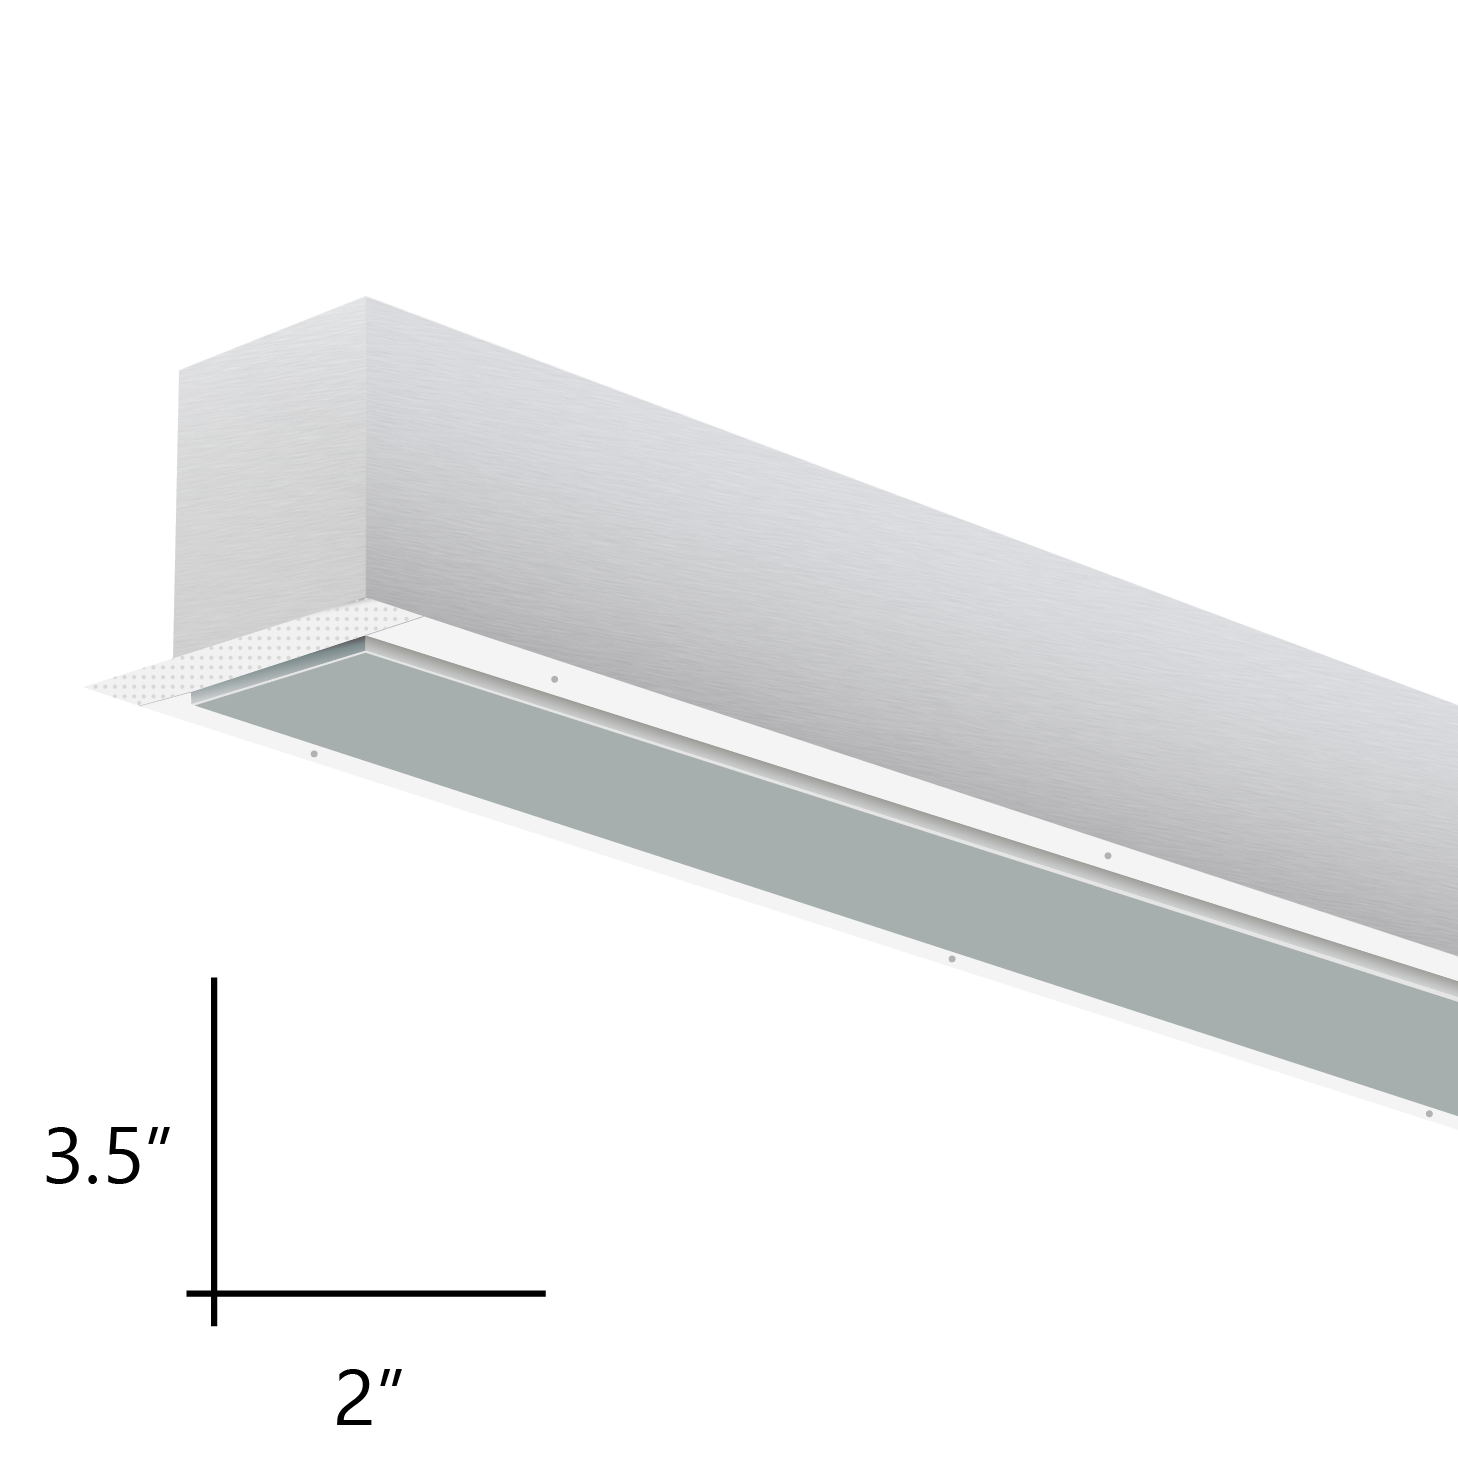 Alcon Lighting 14003 4 Planor 23 Architectural Led 4 Foot Linear